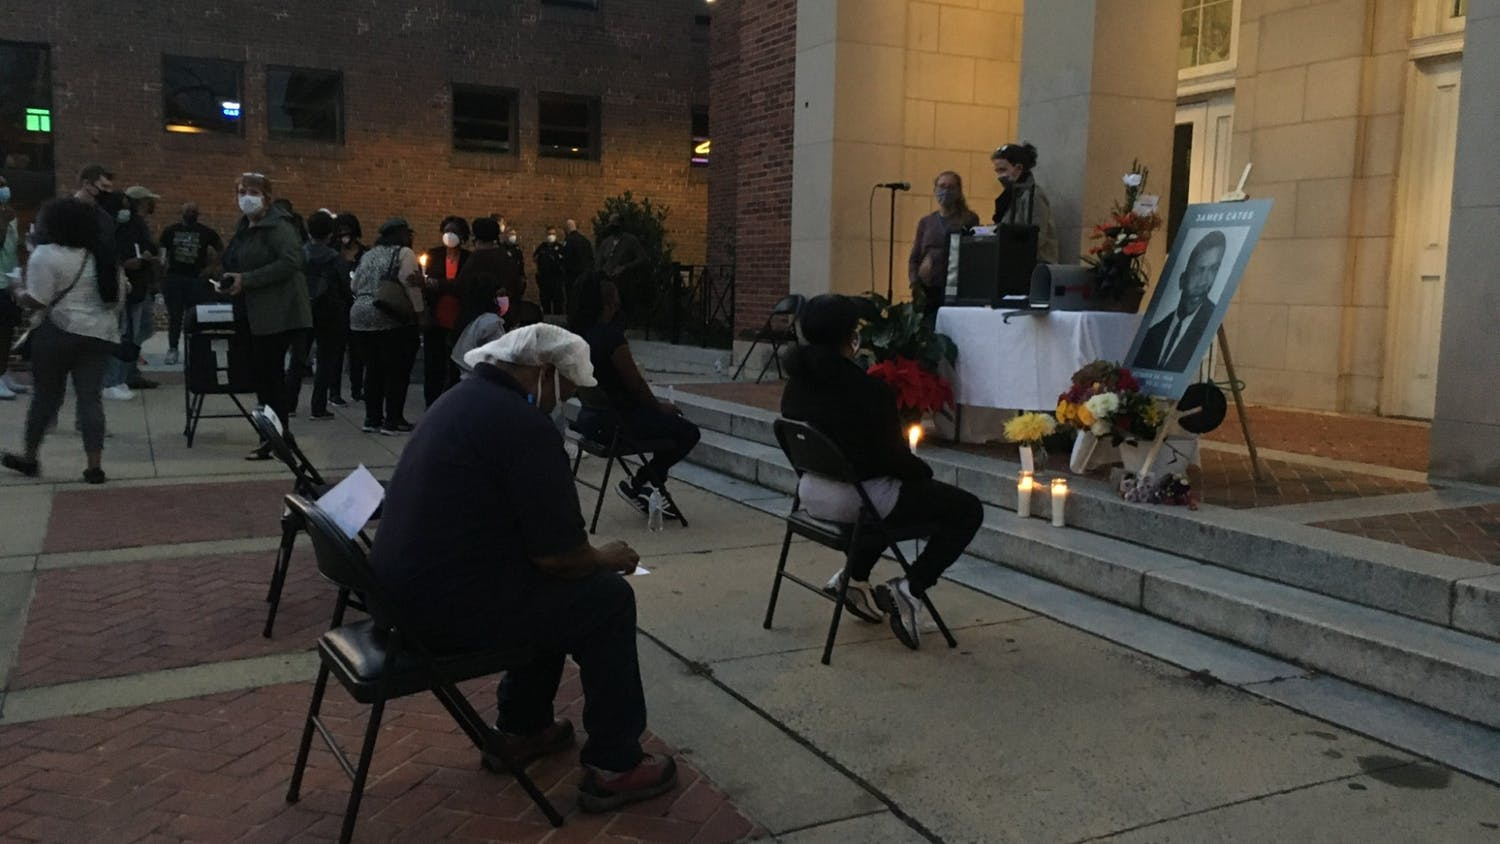 People gather at the Peace and Justice Plaza in remembrance of James Lewis Cates on the 50th anniversary of his murder on Nov. 21, 2020.